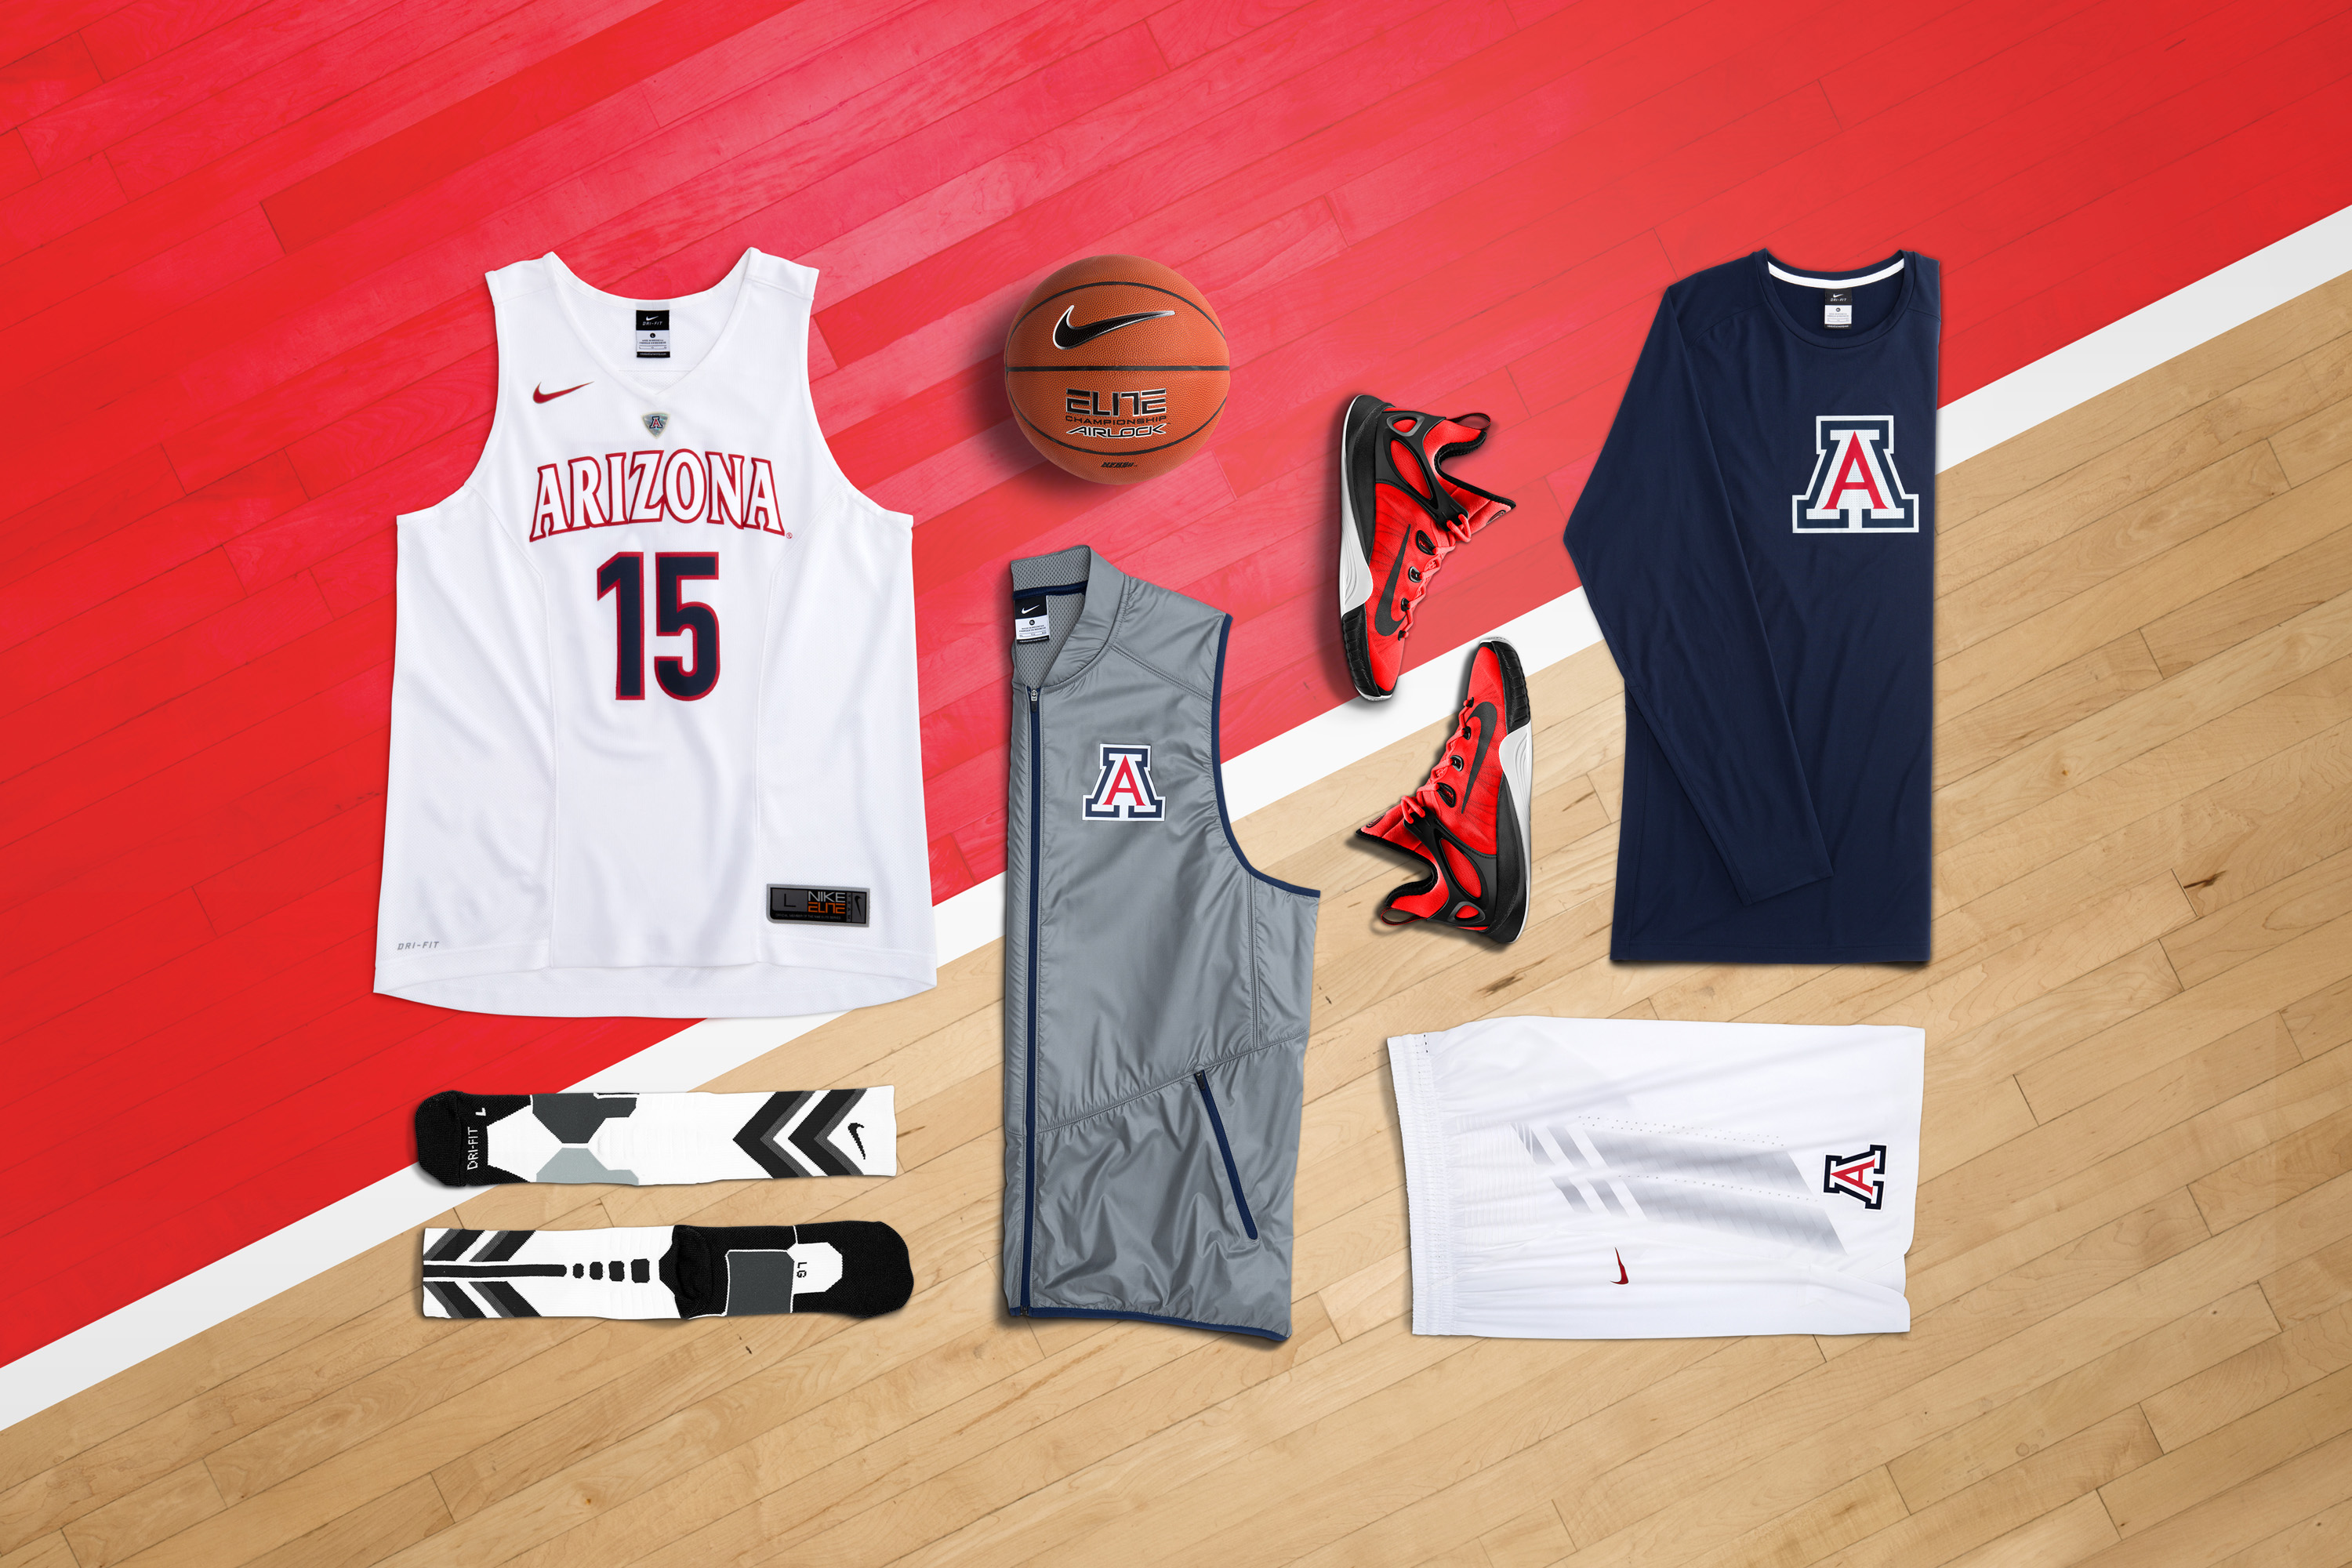 b817a43cbd6f 25.88 at Eight NCAA Basketball Teams Ready for Rivalries with New Nike  Uniforms.